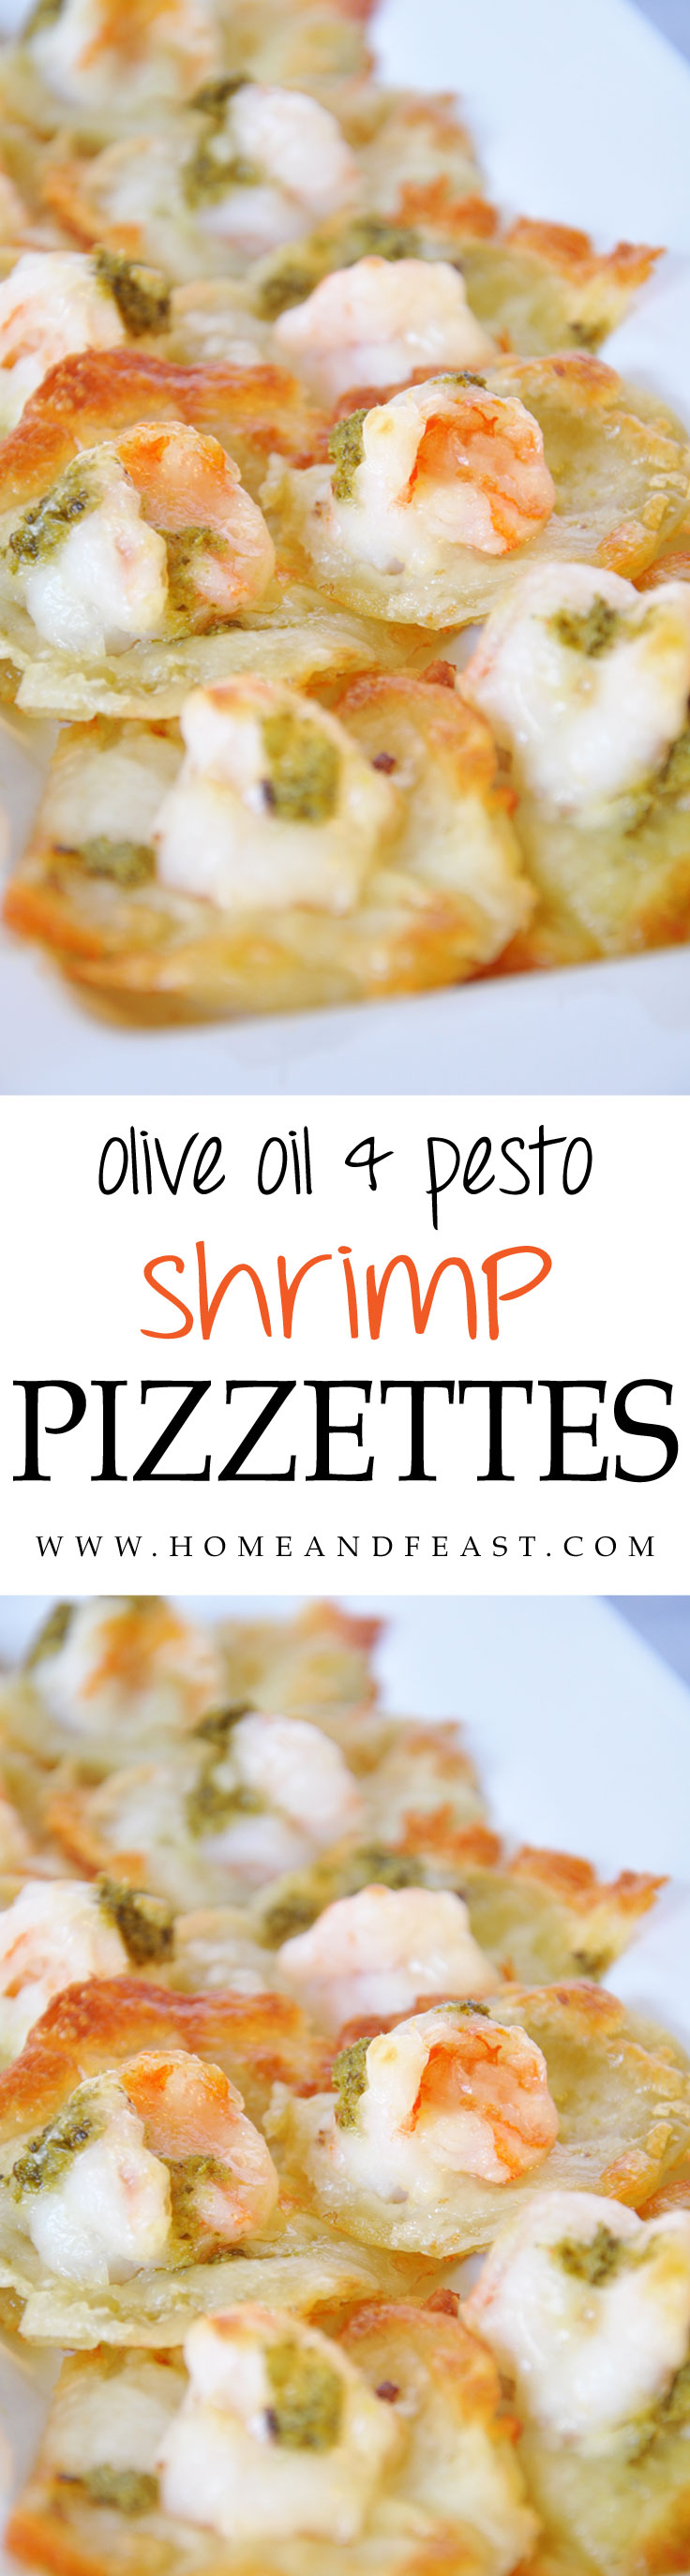 Easy Shrimp Pizzette Appetizer with Olive Oil and Pesto